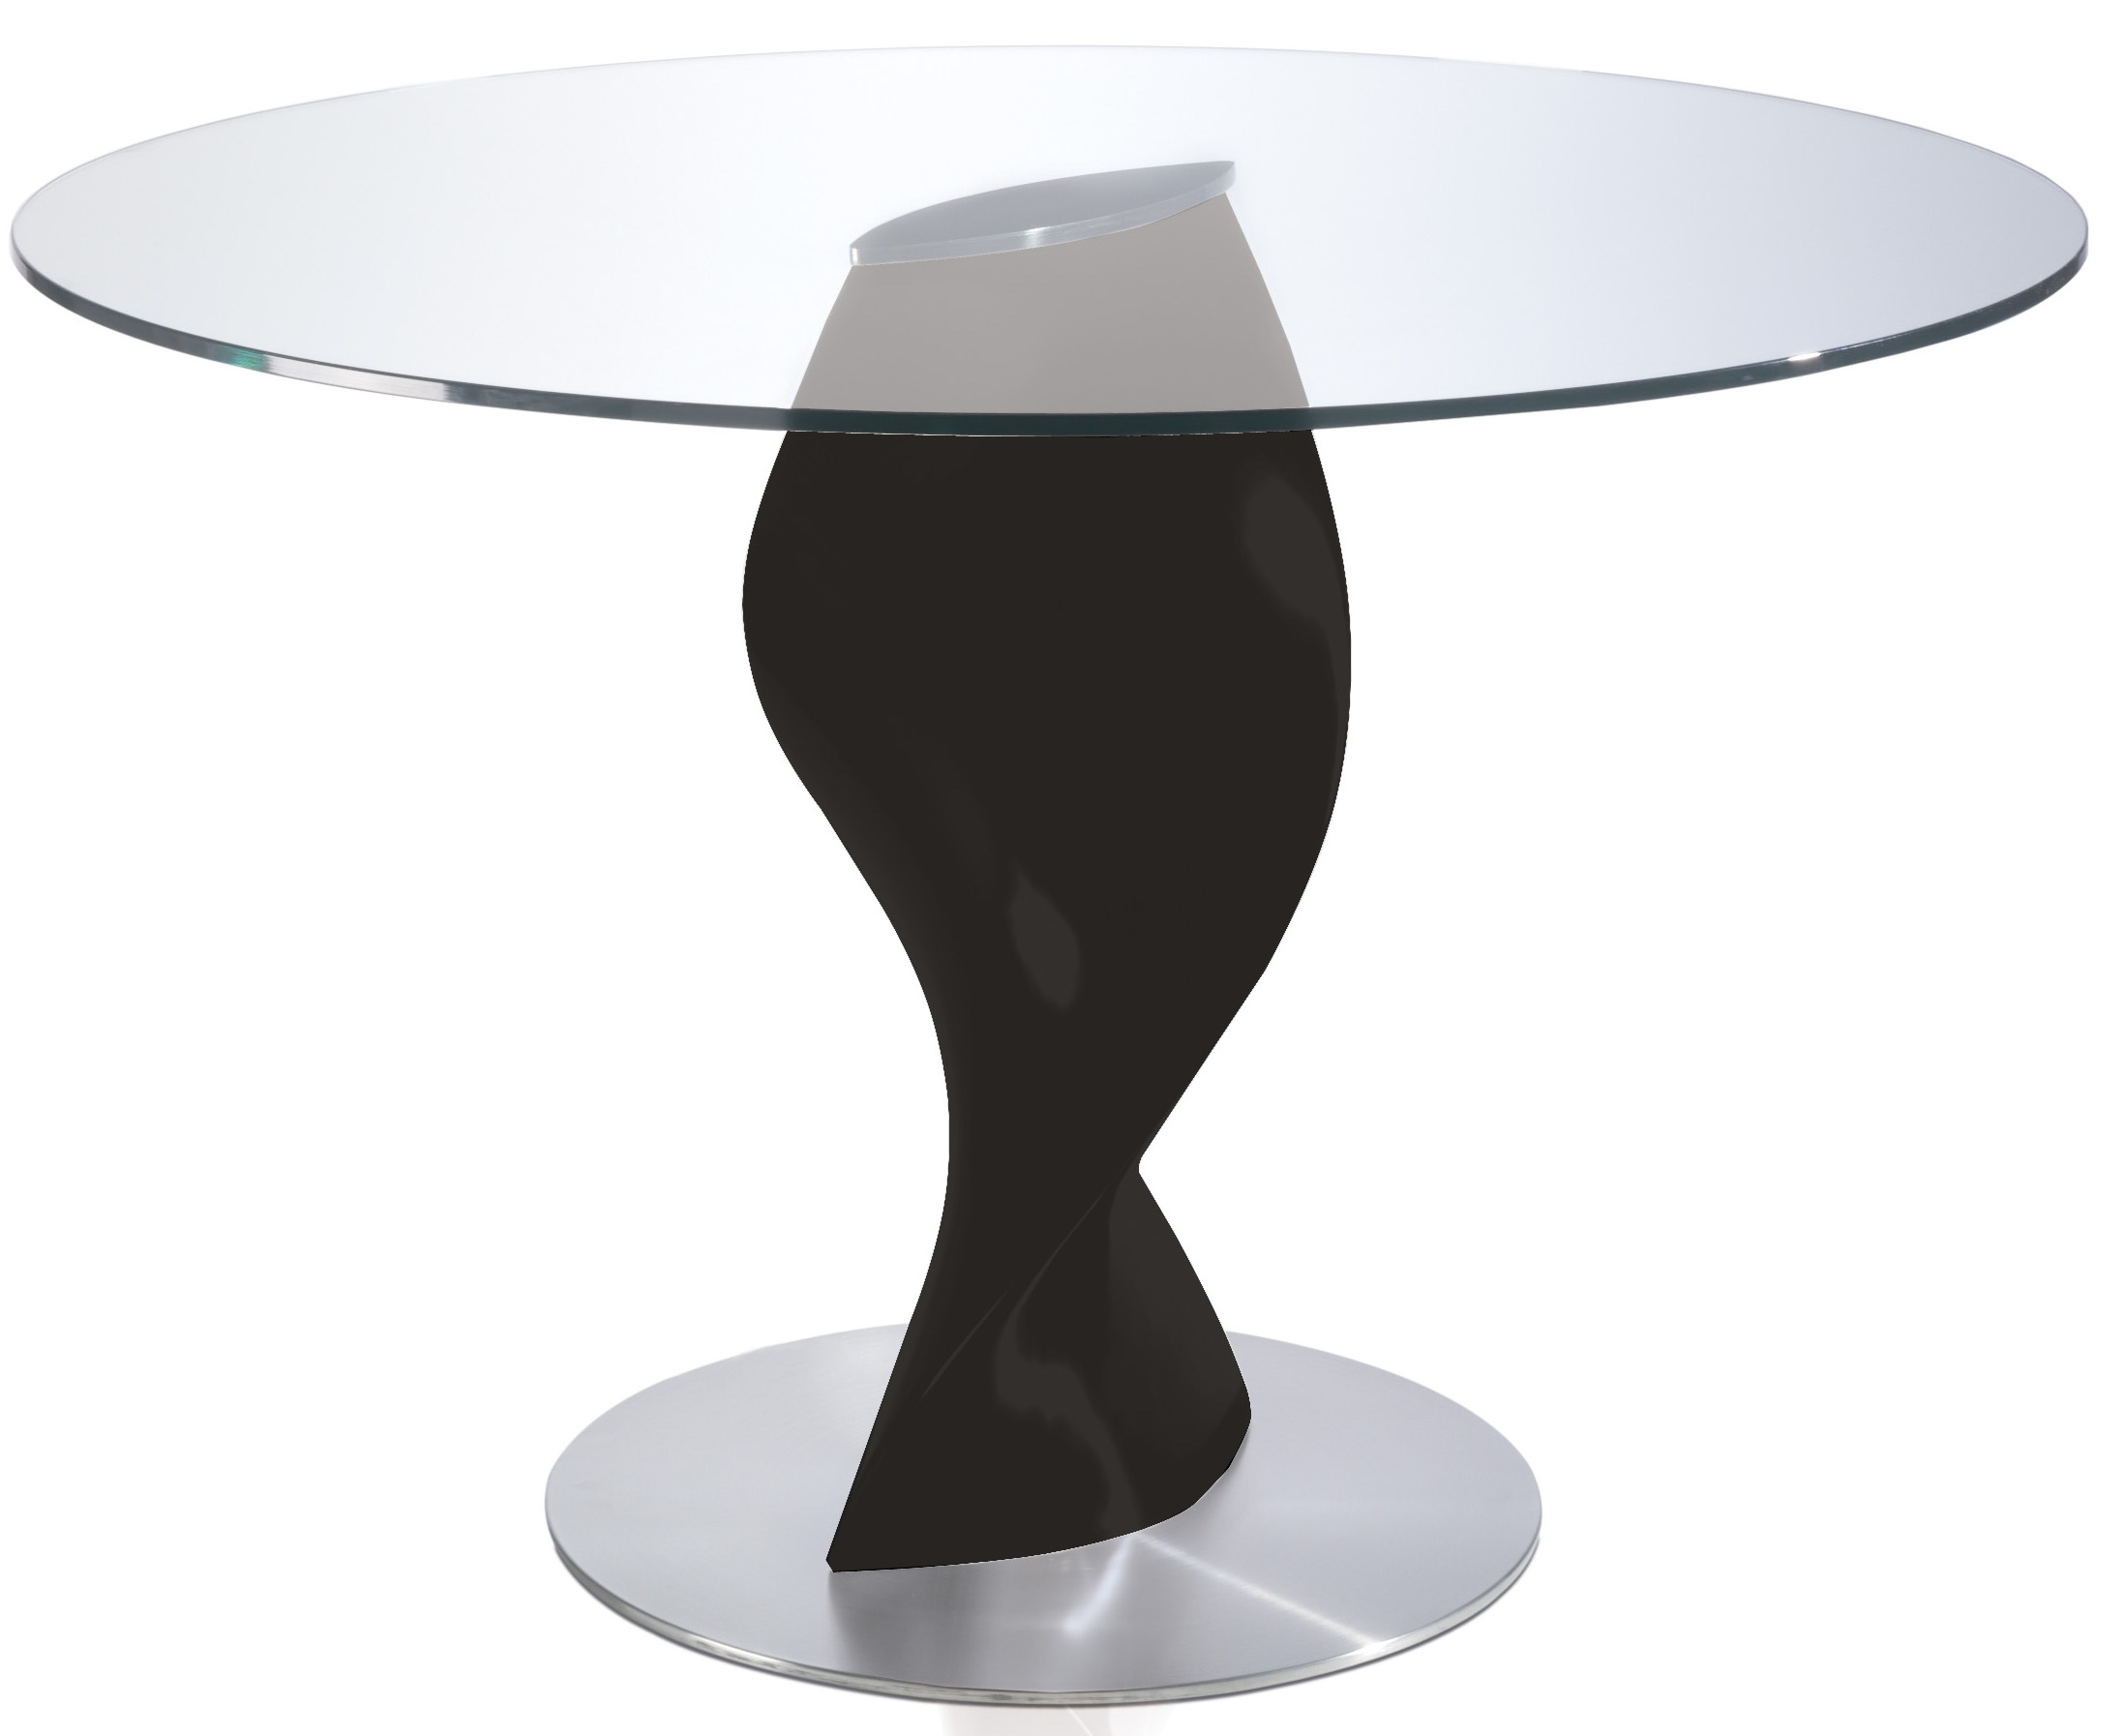 Table ronde laqu e noir en fibre de verre torsada - Dimension table ronde ...